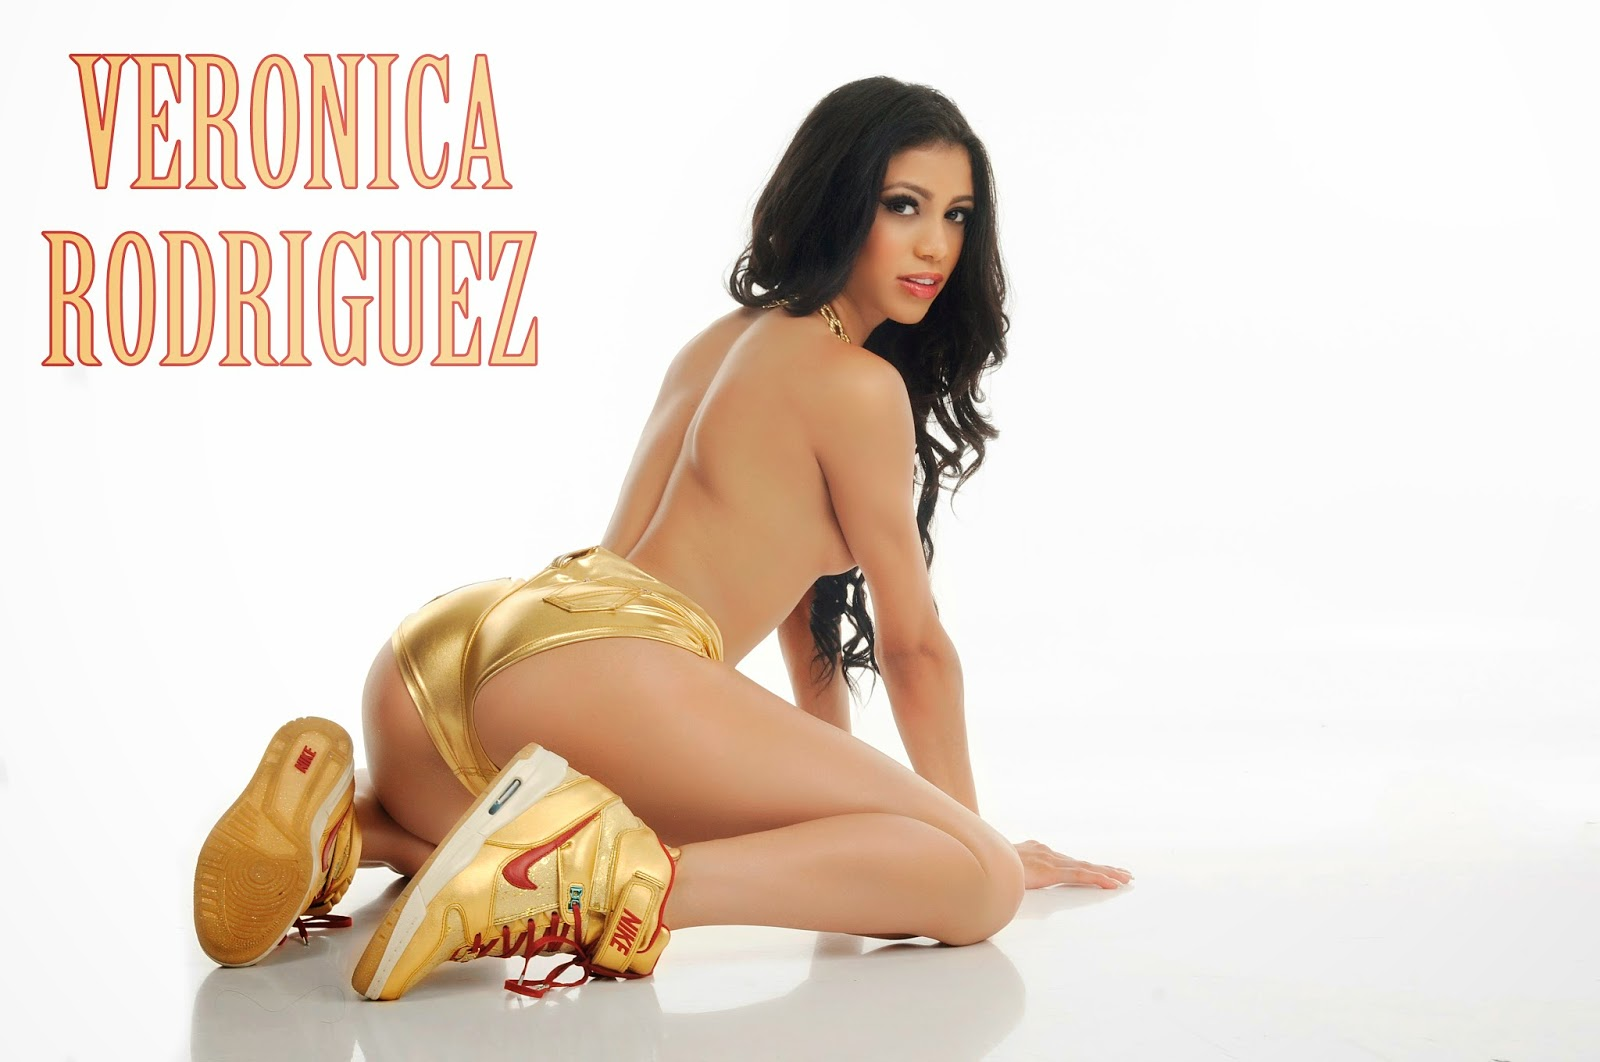 Veronica Rodriguez Productions